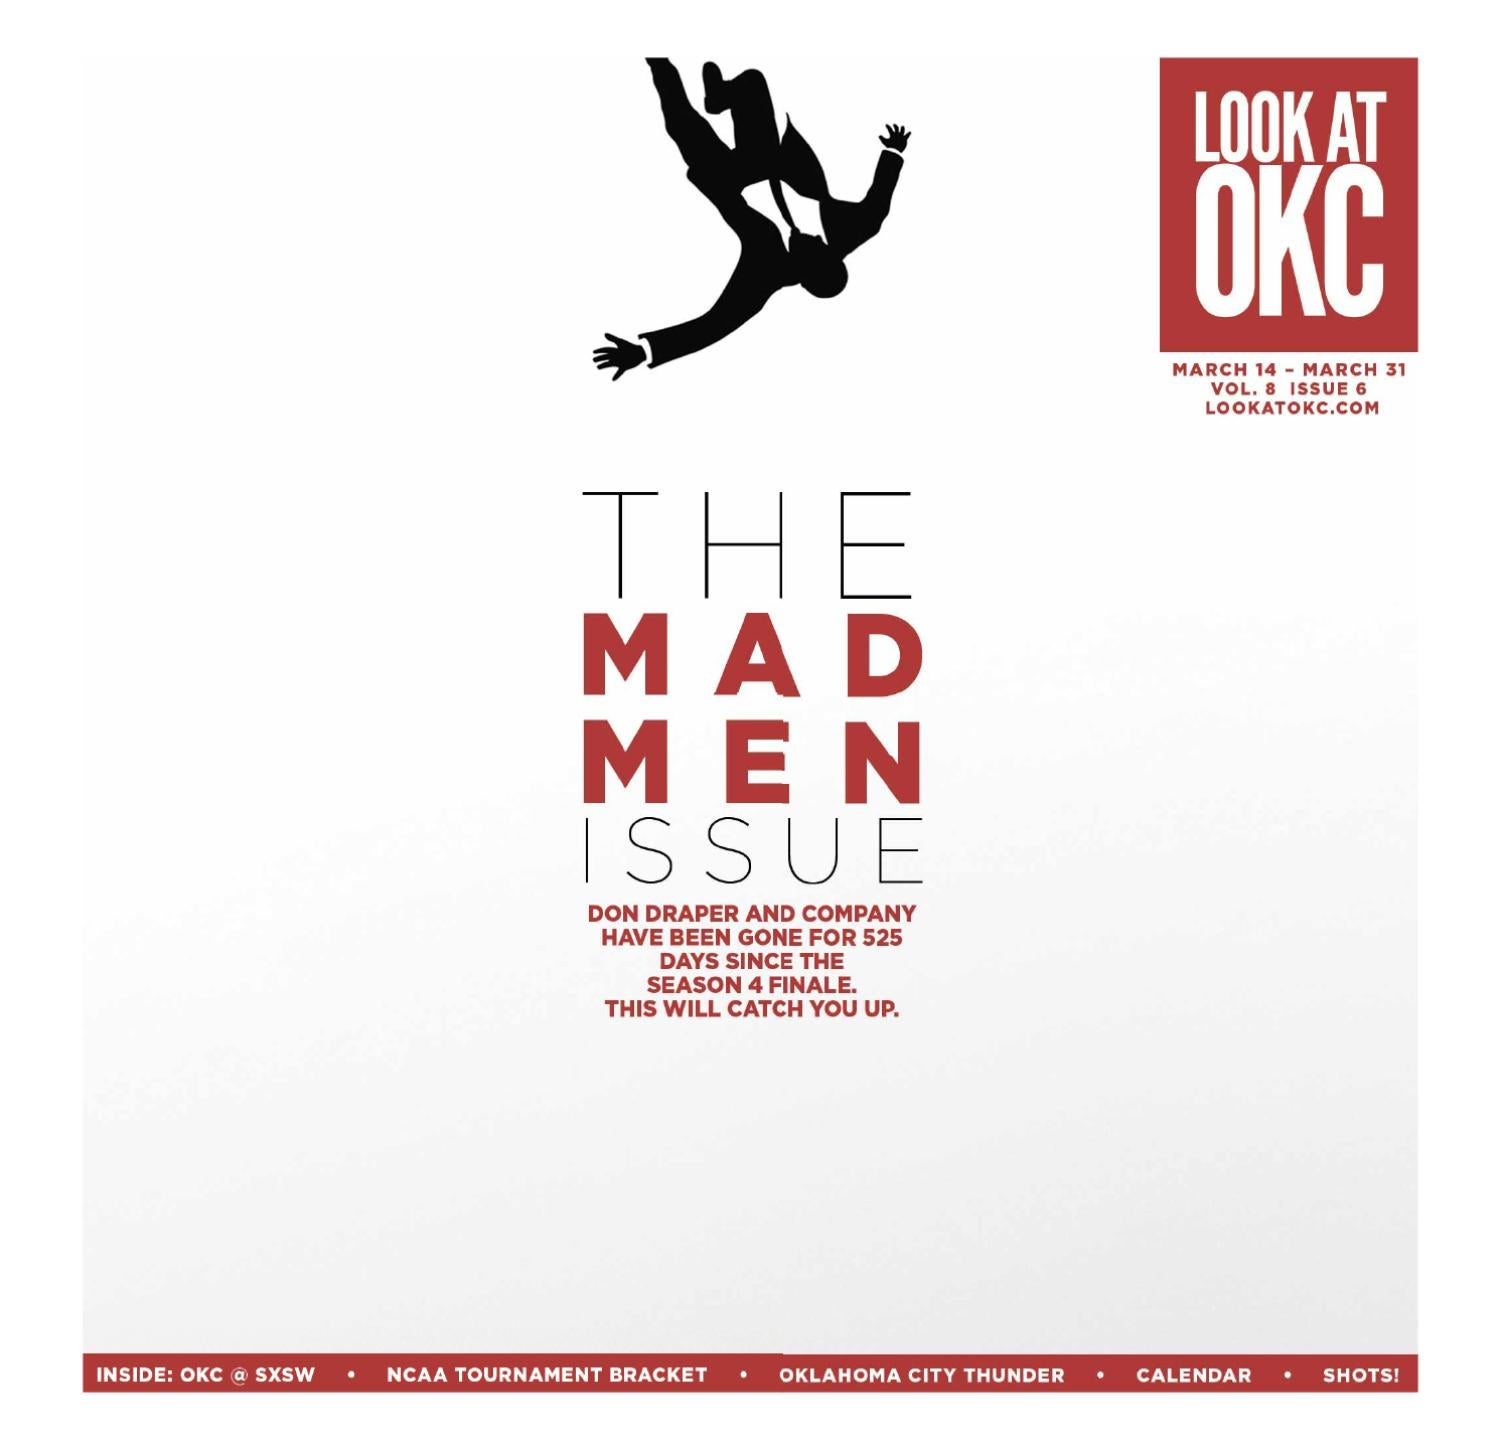 Mad Men Issue - LookatOKC by OPUBCO Communications Group - issuu 5bc4008fe